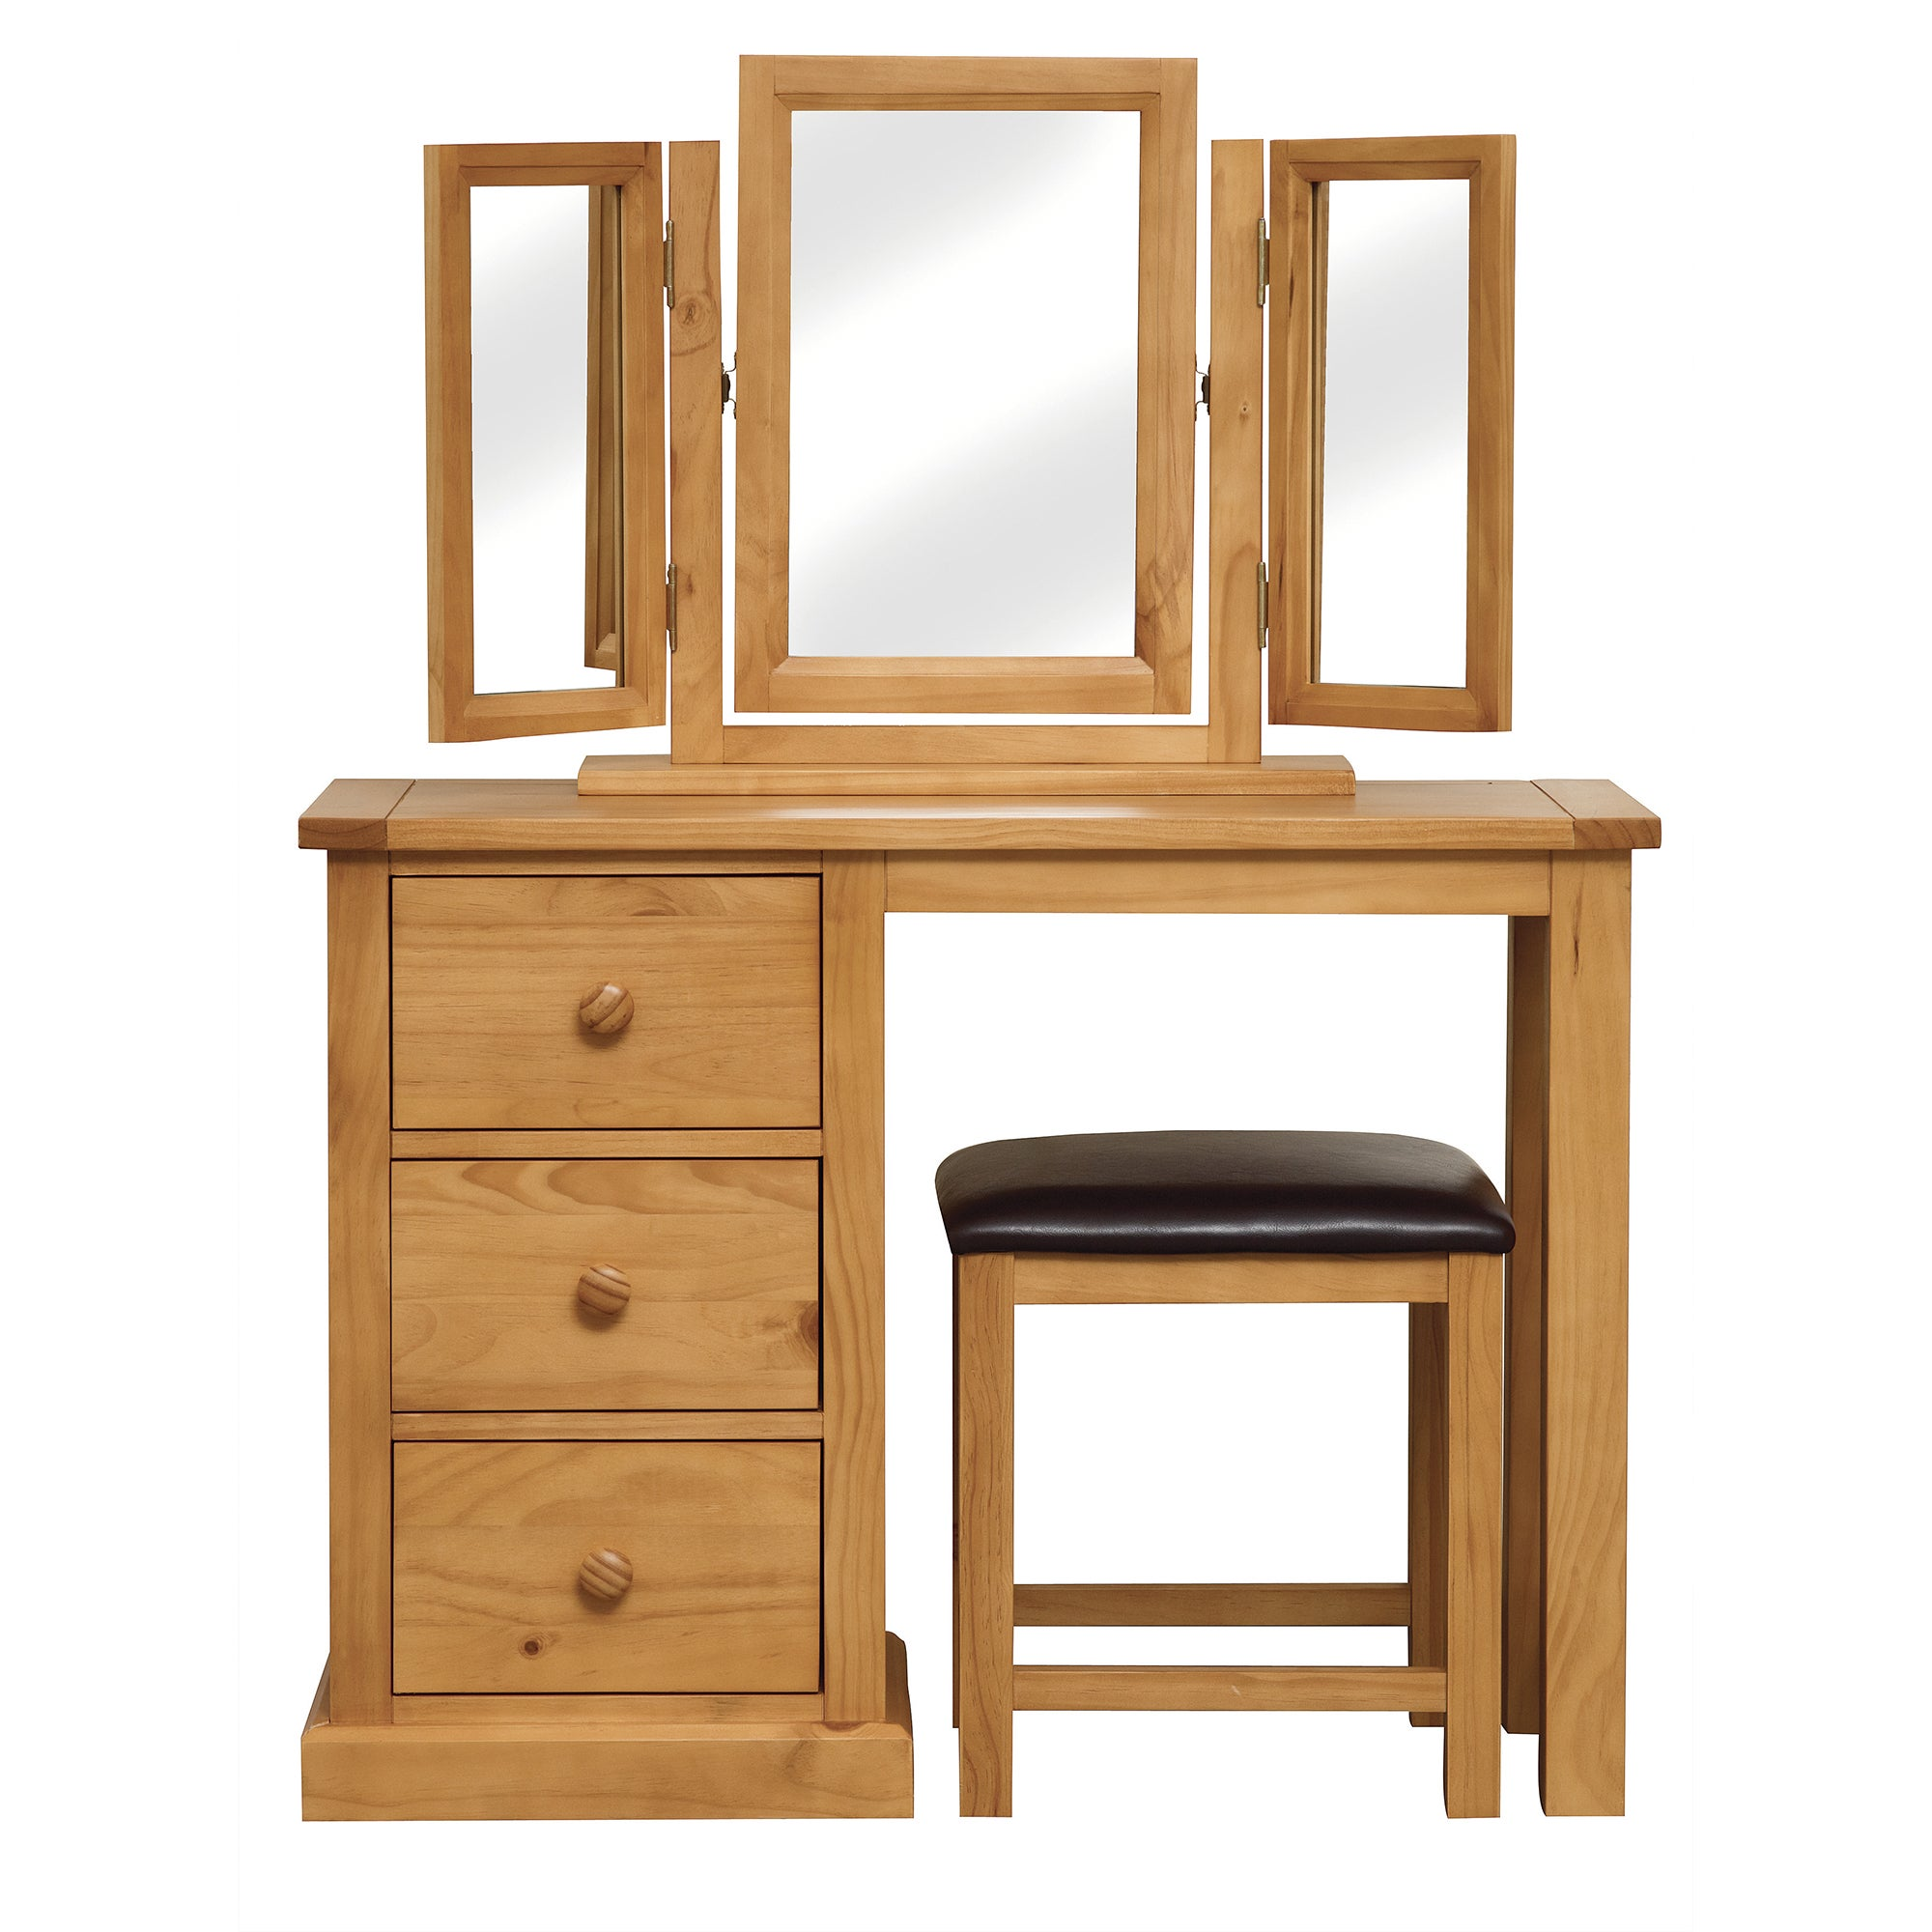 Newhaven Pine Dressing Table